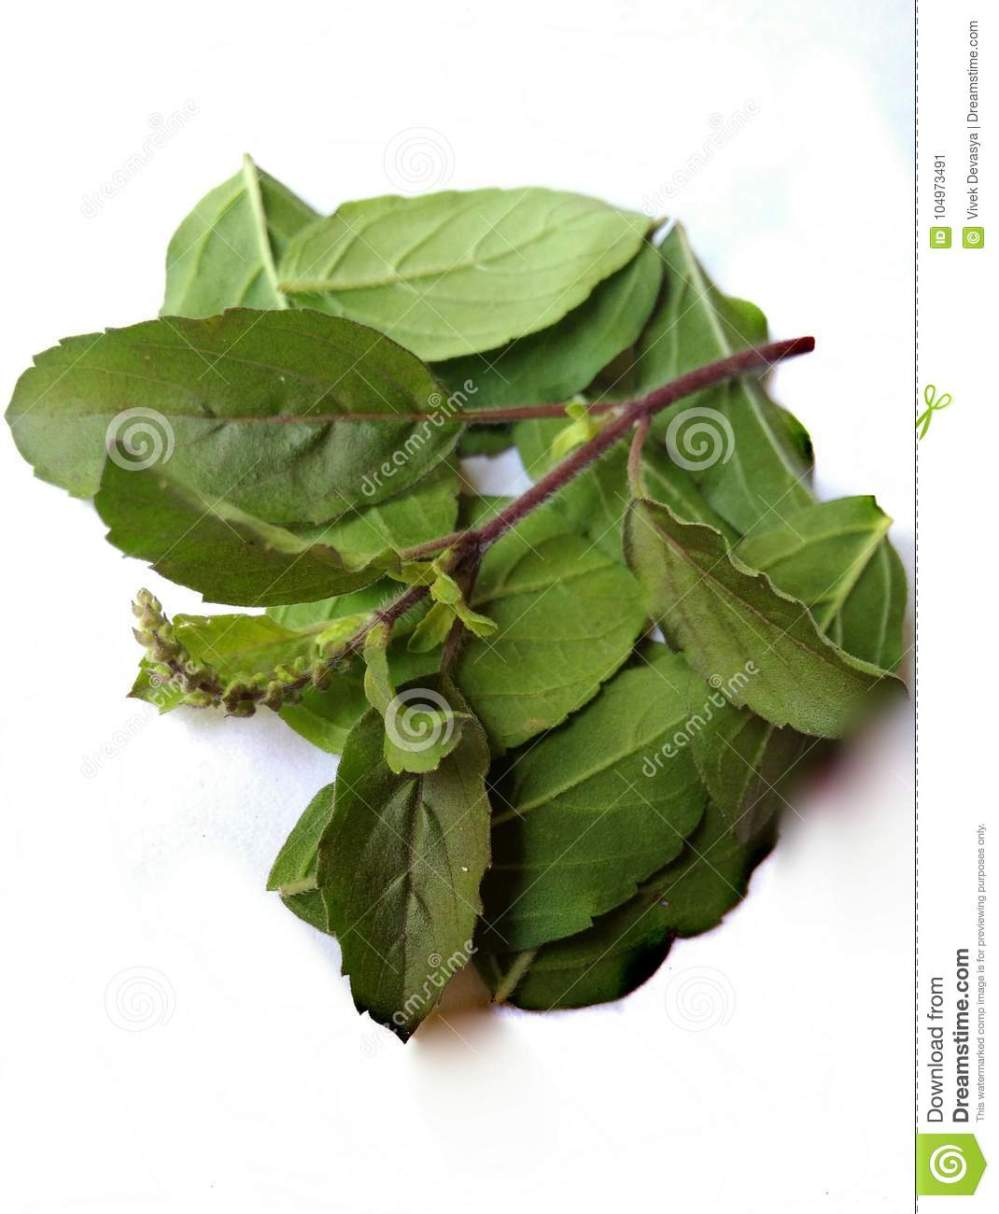 medium resolution of tulsi leaf or plant is the one of famous and effective ayurvedic plant it is the holy plant for hindus and it cures many health problems